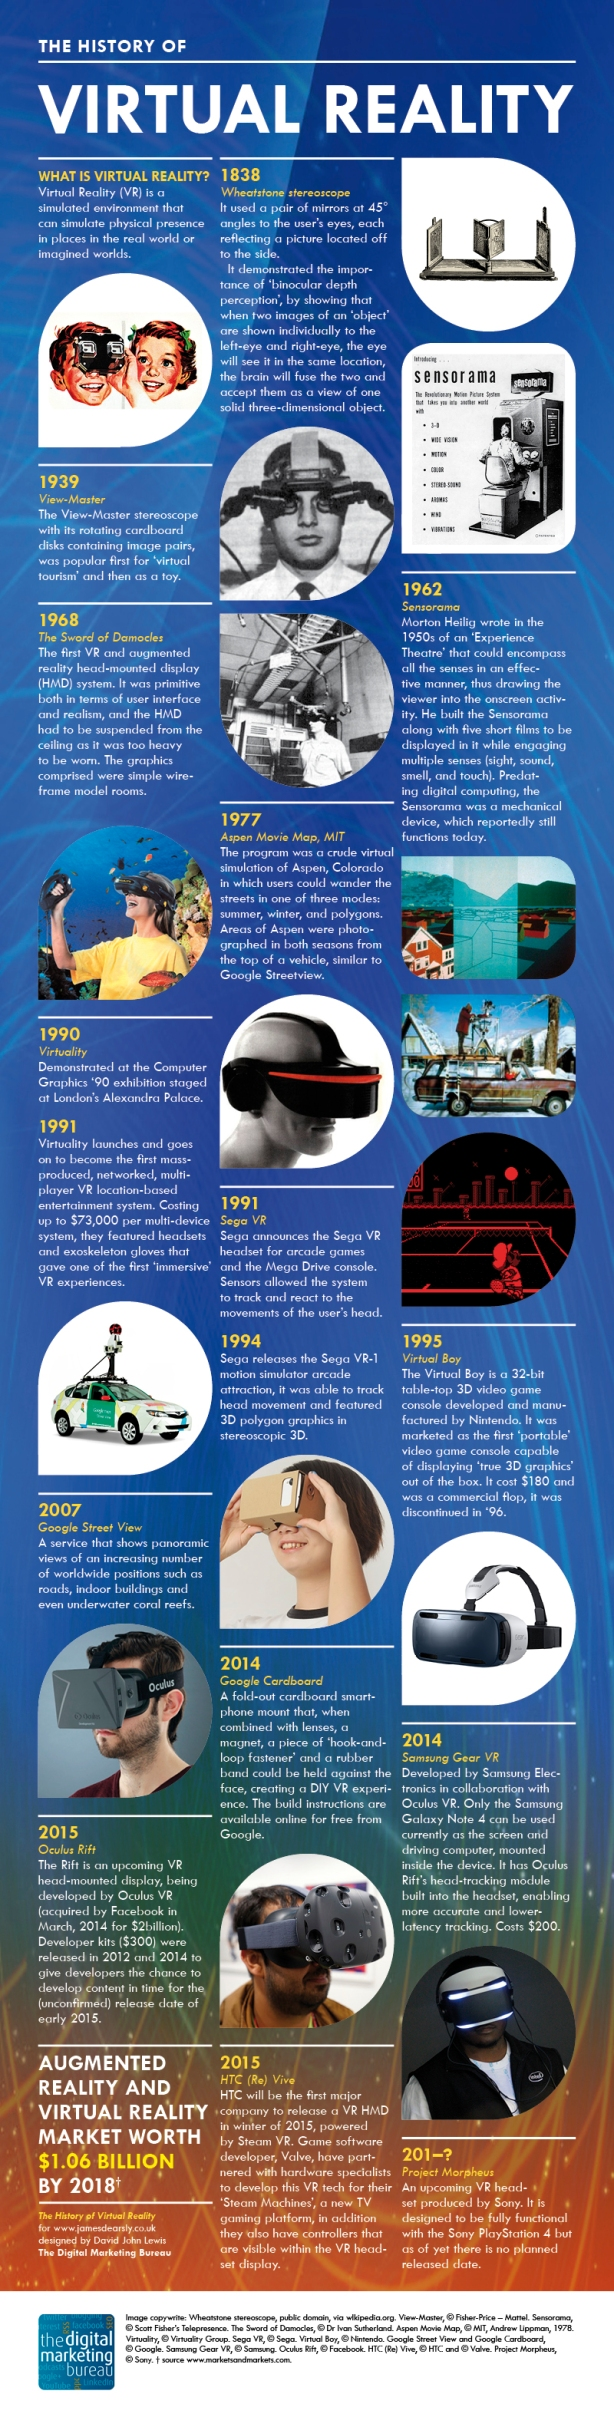 history-virtual-reality-infographic